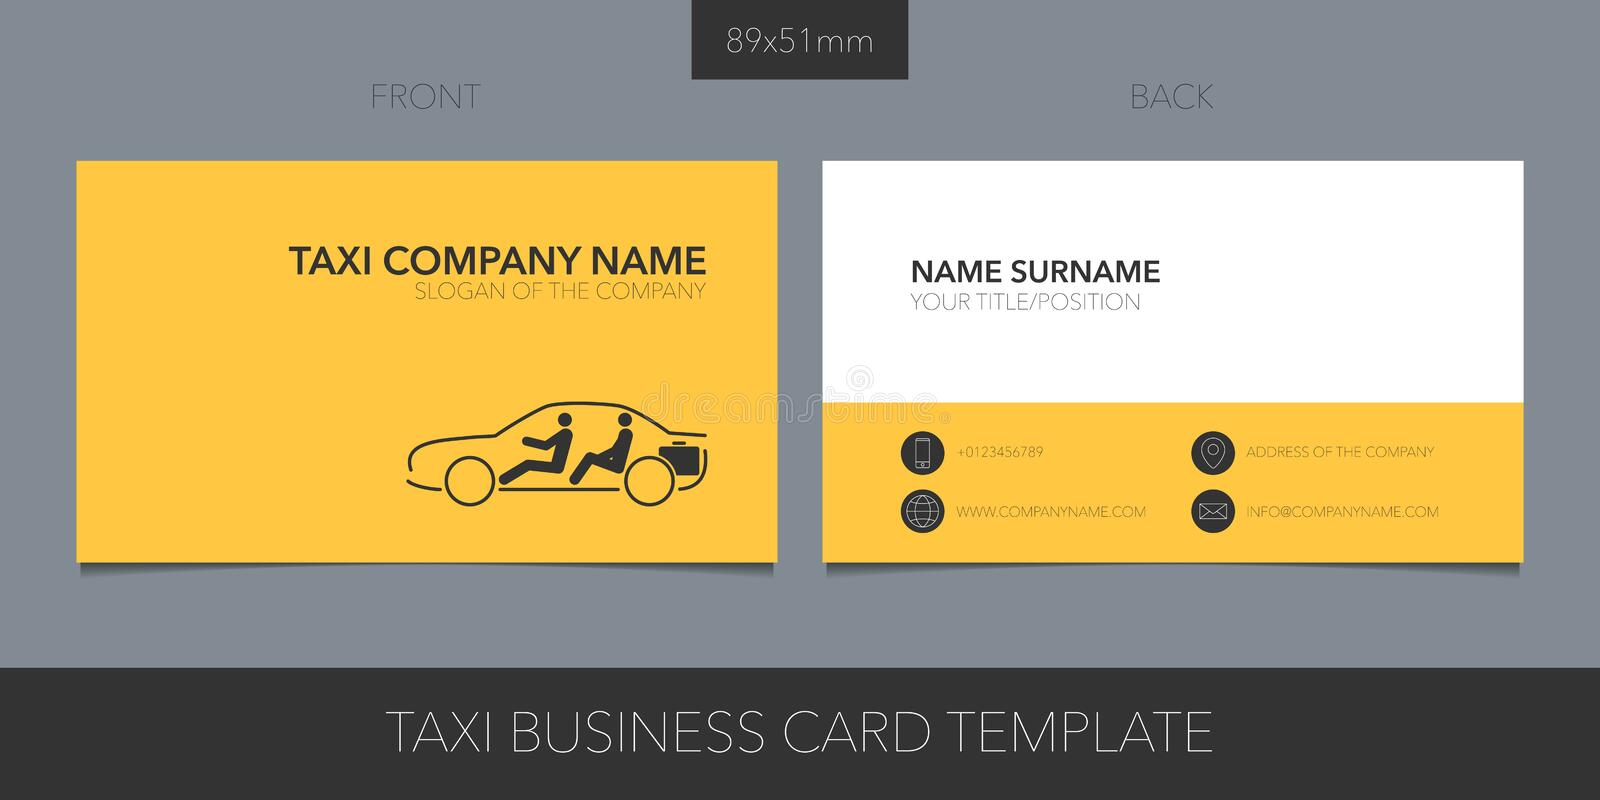 Taxi, cab vector business card with logo, icon and contact details. vector illustration